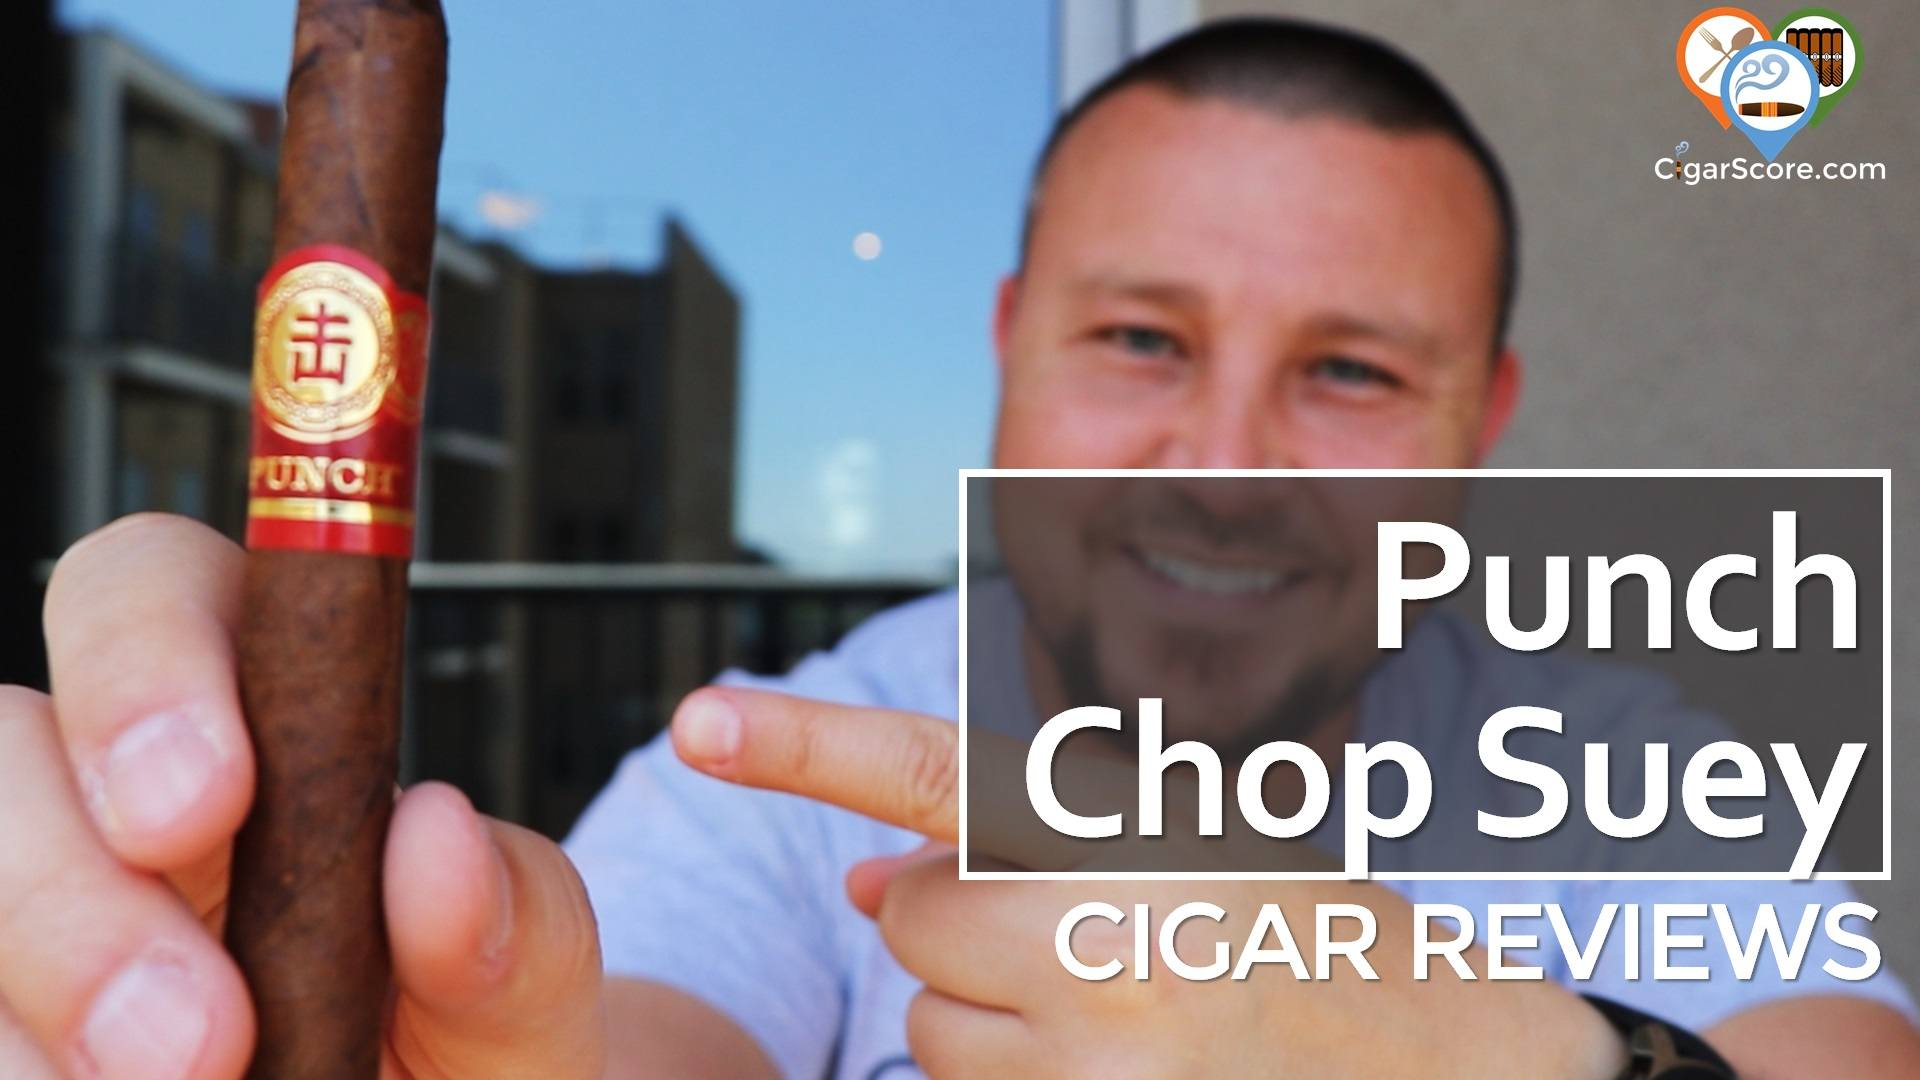 cigar Review - Punch Chop Suey